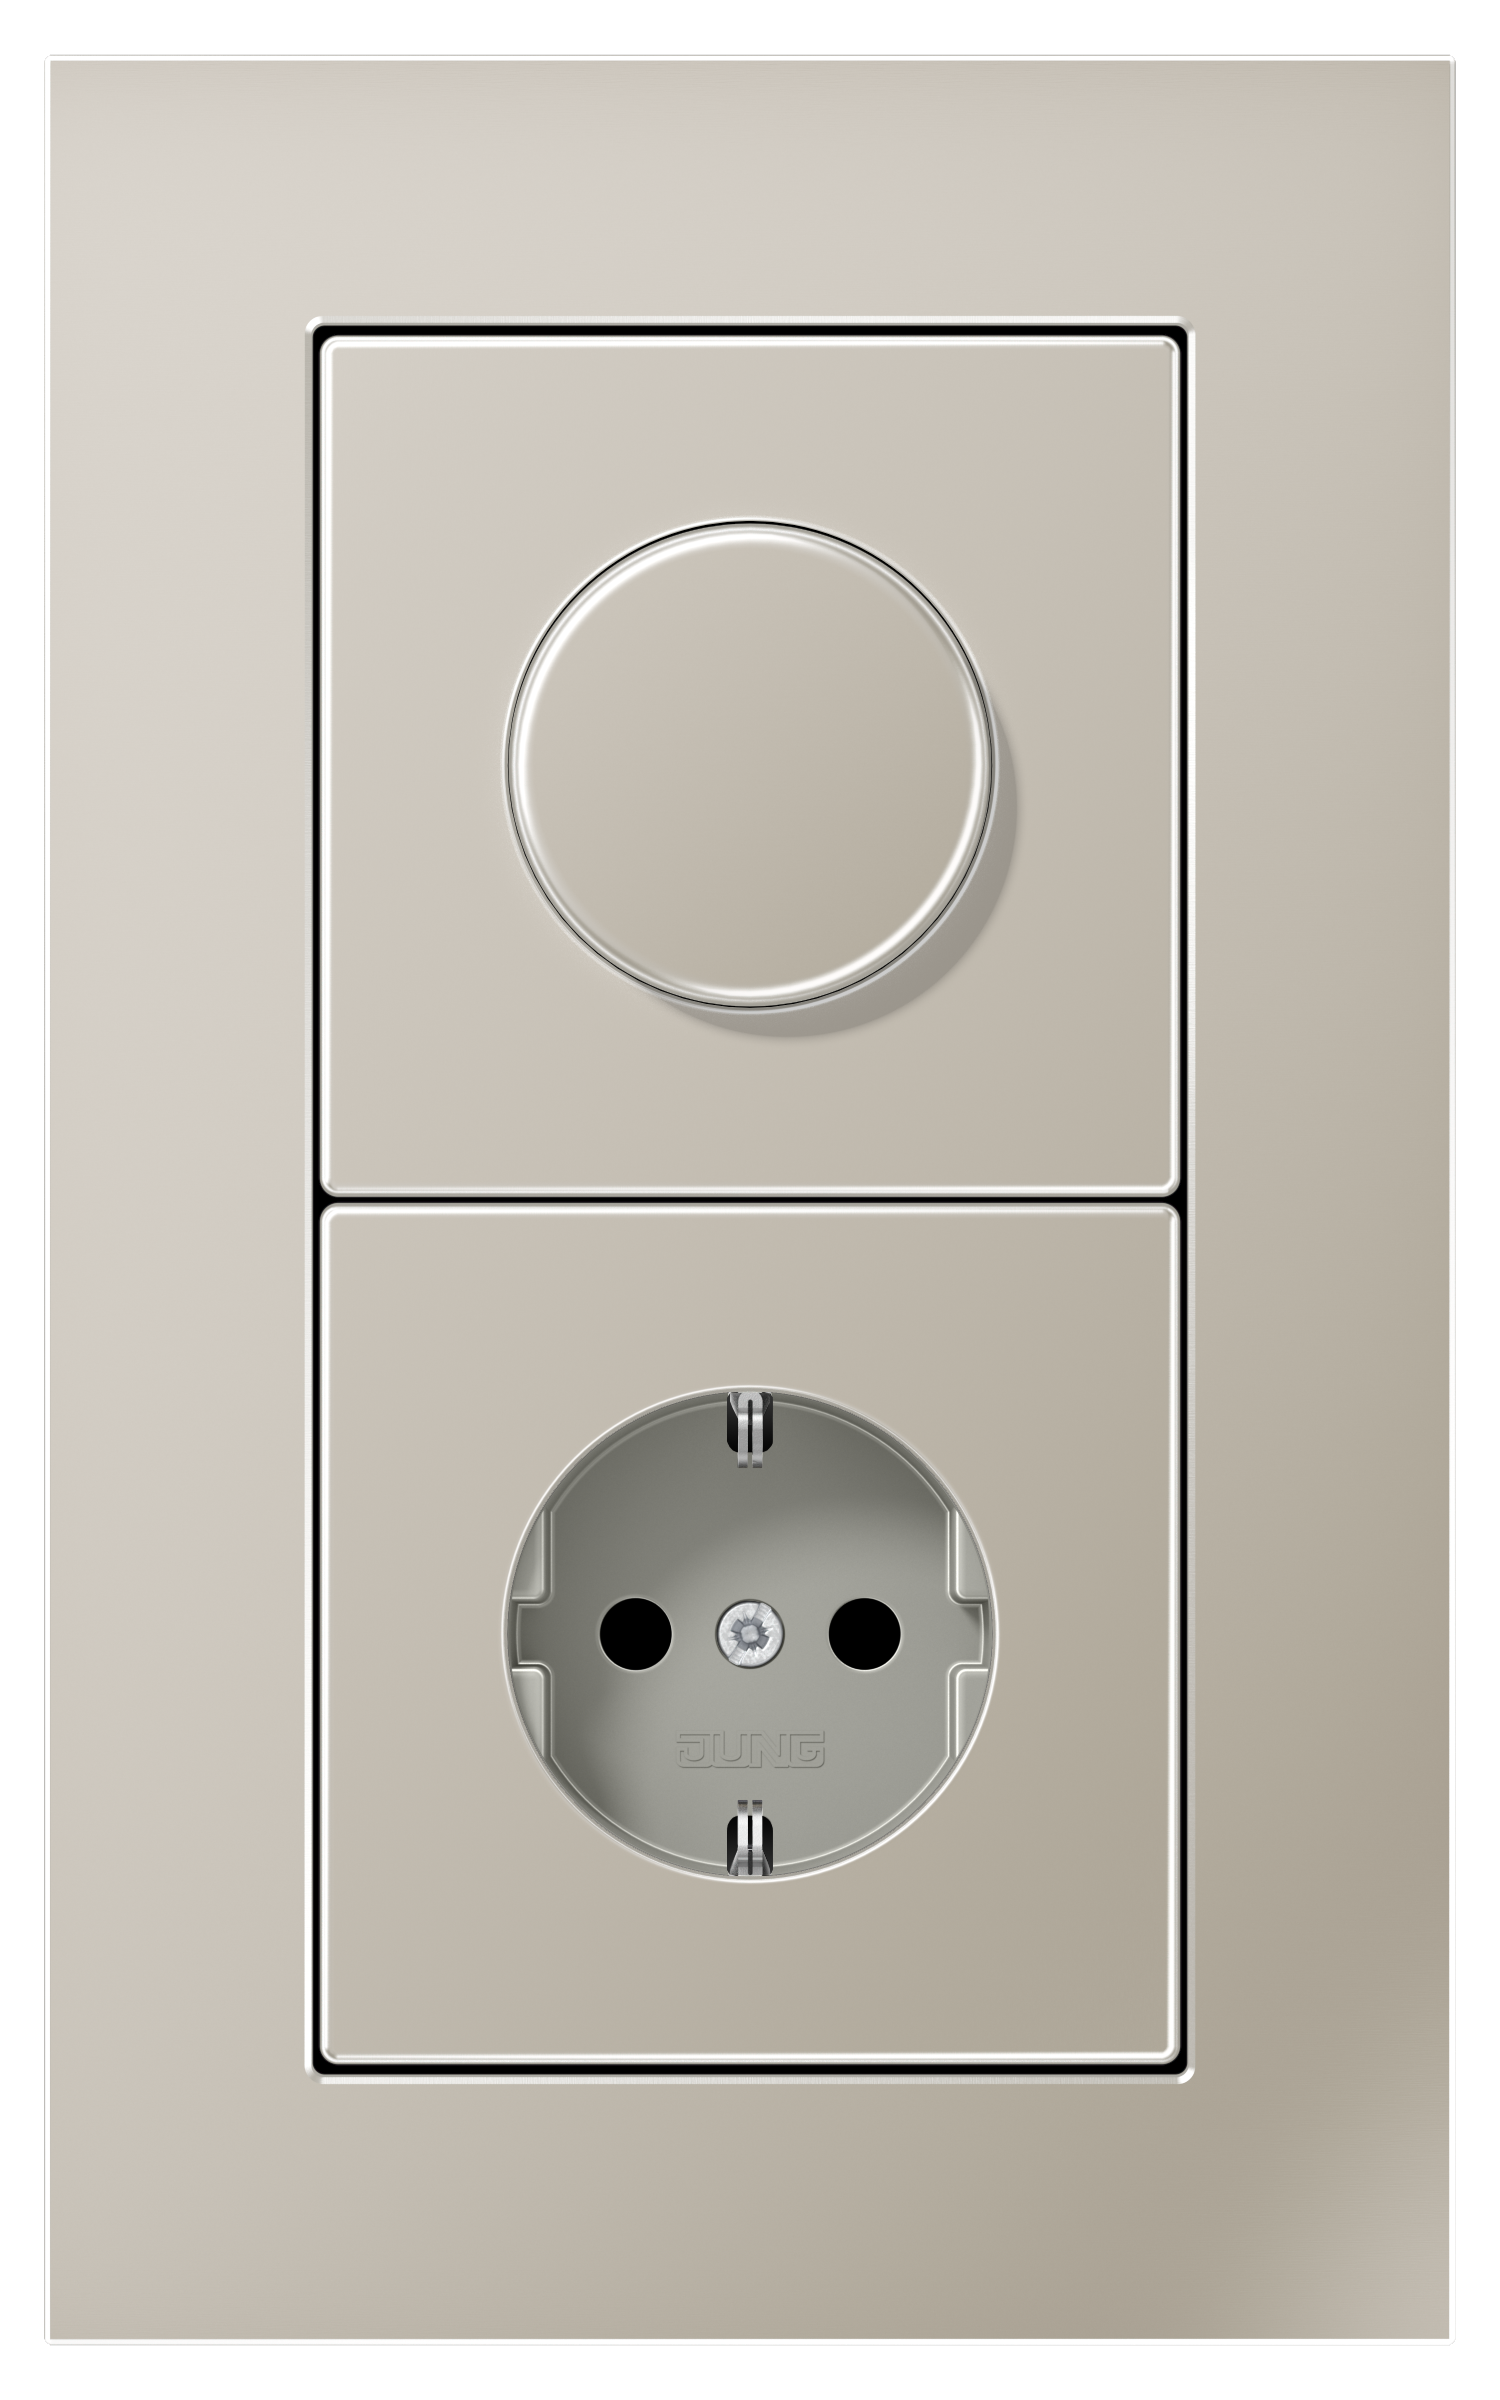 JUNG_LS_plus_stainless-steel_dimmer-socket